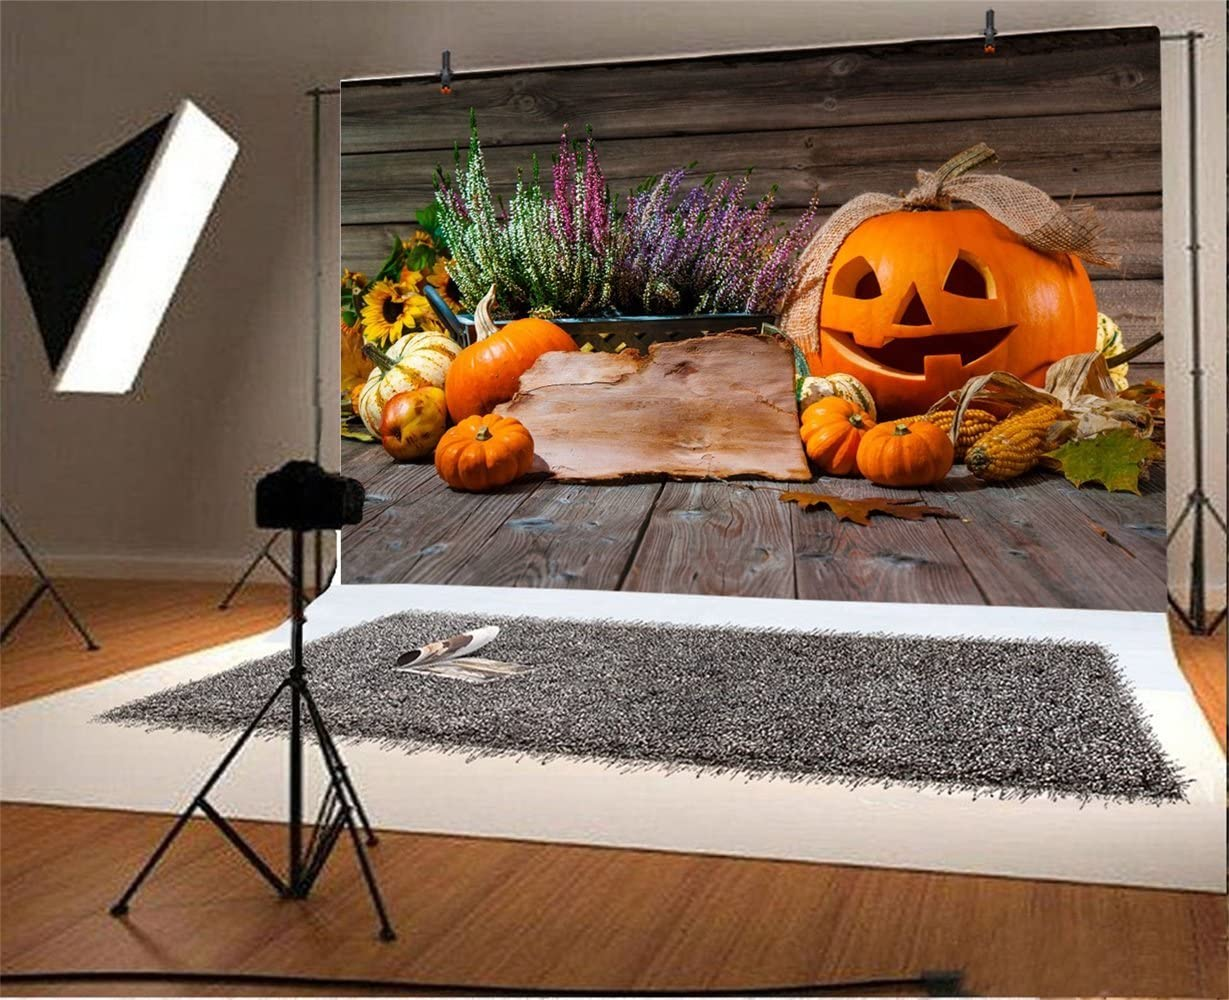 Laeacco 6x4ft Halloween Theme Backdrop Vinyl Indoor Ribbon Grinning Pumpkin Lamp Small Cushaws Flowers Wooden Floor Photography Backgroud Child Kids Baby Shoot Poster Greeting Card